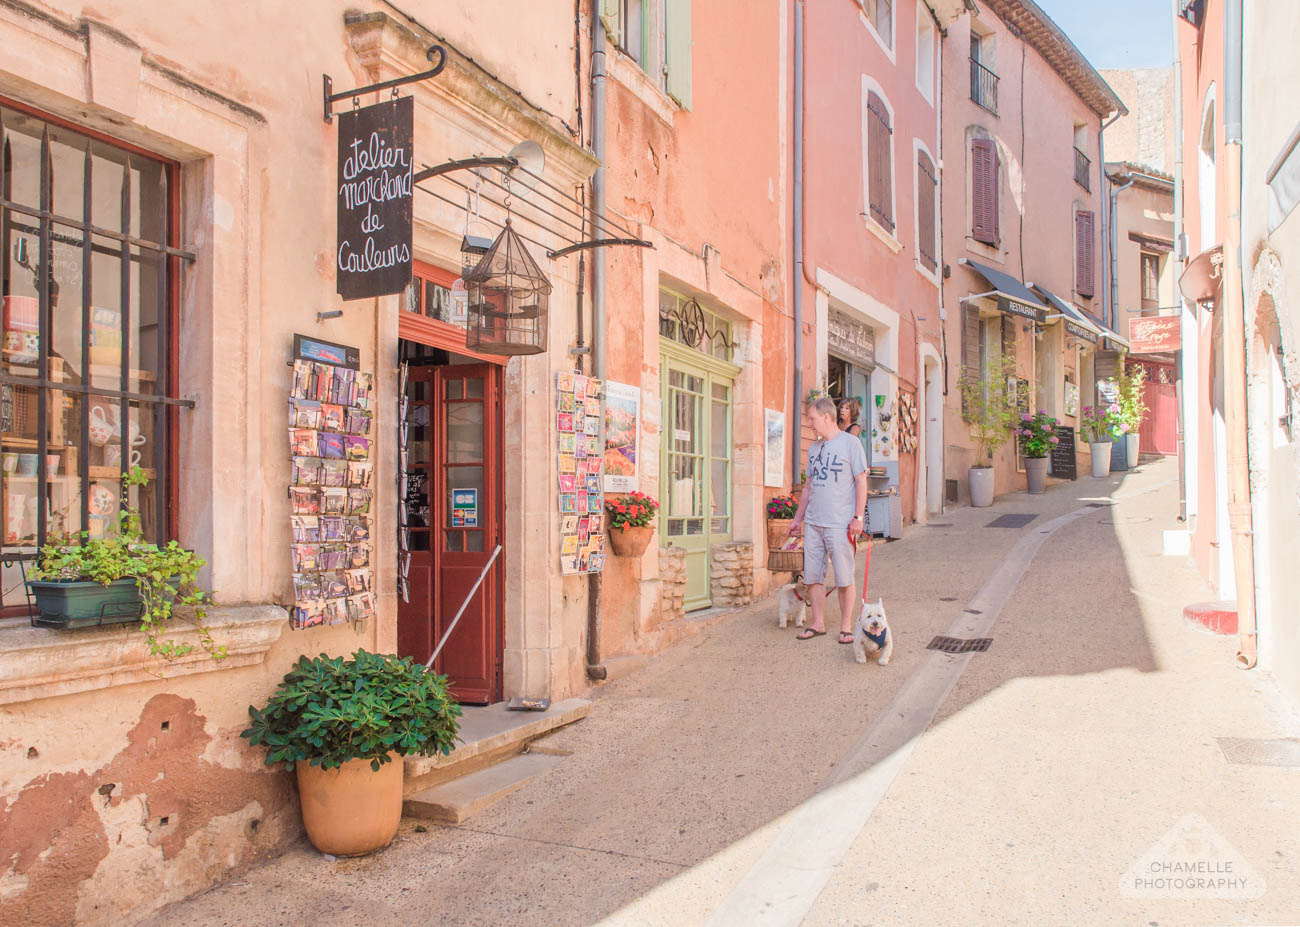 Roussillon ocre ochre Provence France lavender fields road trip